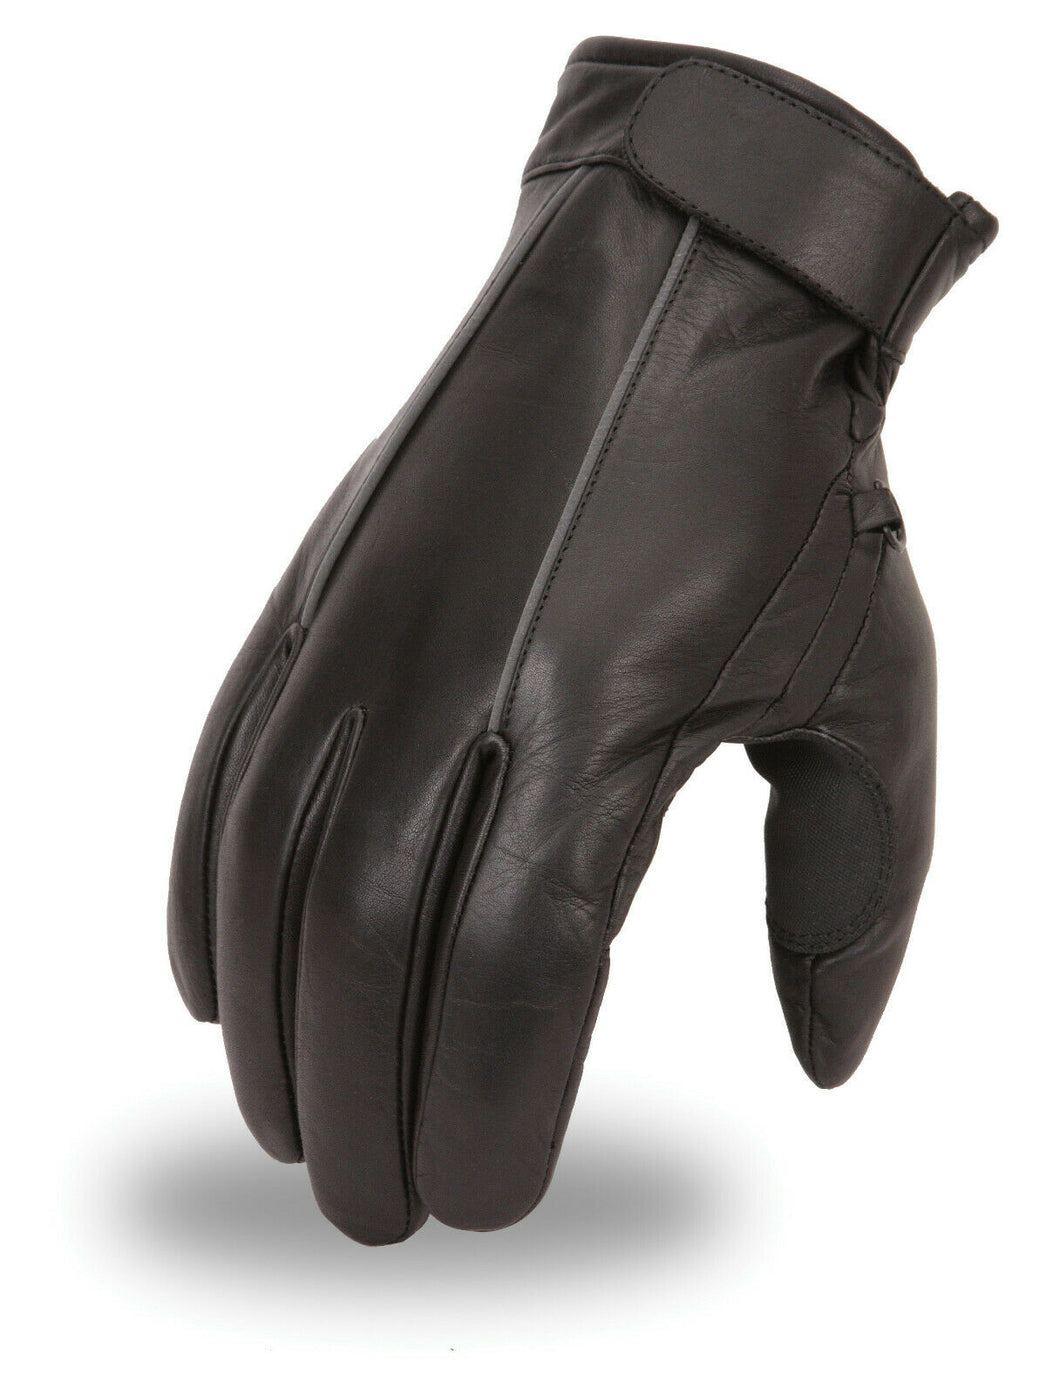 Men's Leather Glove Featuring Reflective Piping FI152GL